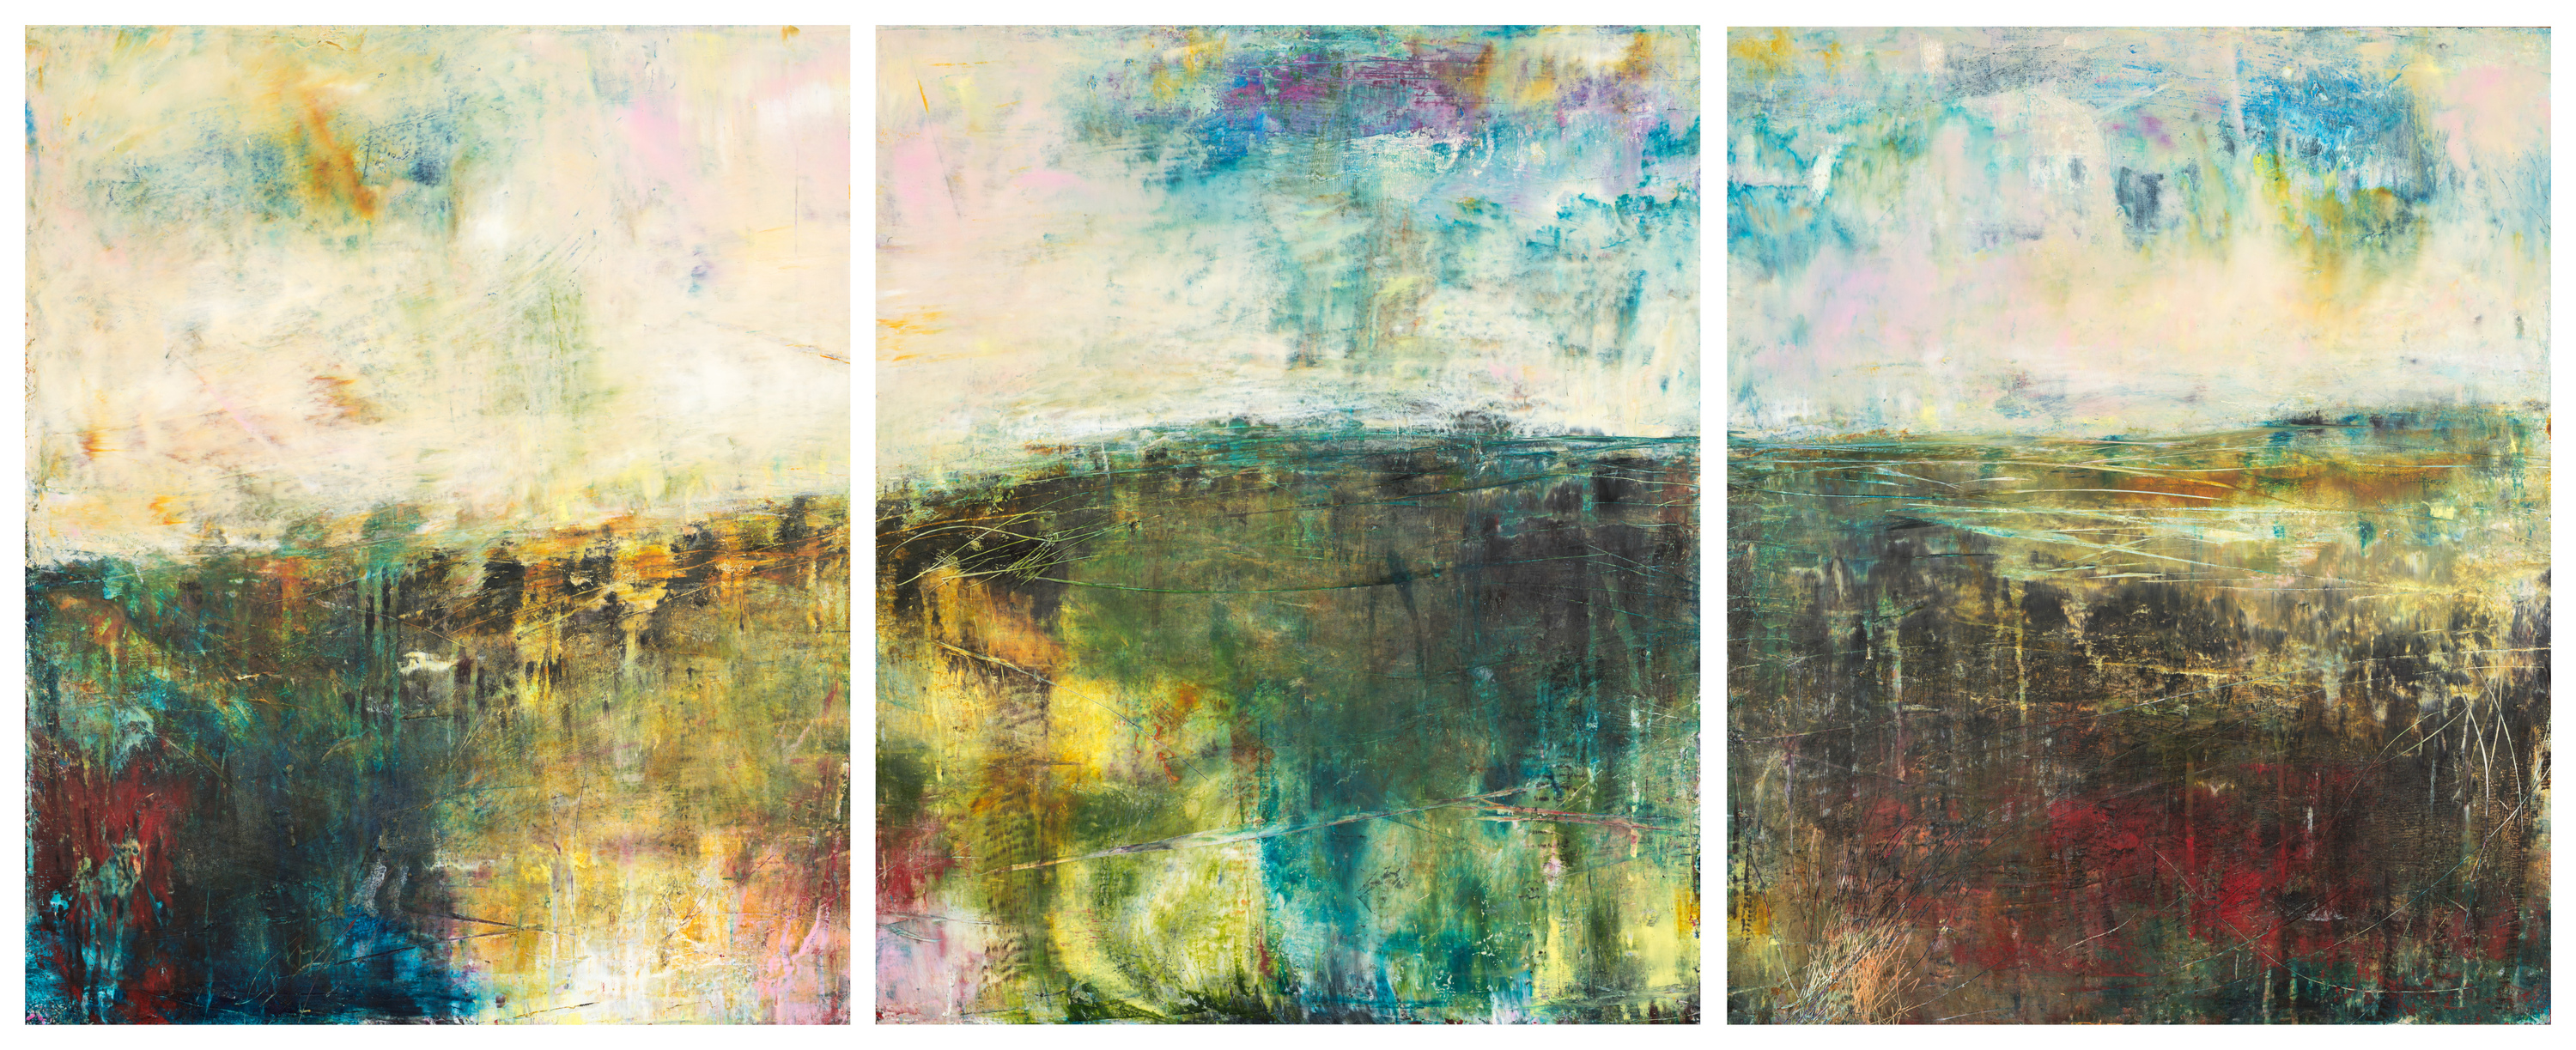 Eadaoin glynn 2019 land triptych oil cold wax on cradled panel 60x150cm gaps hires ocone3